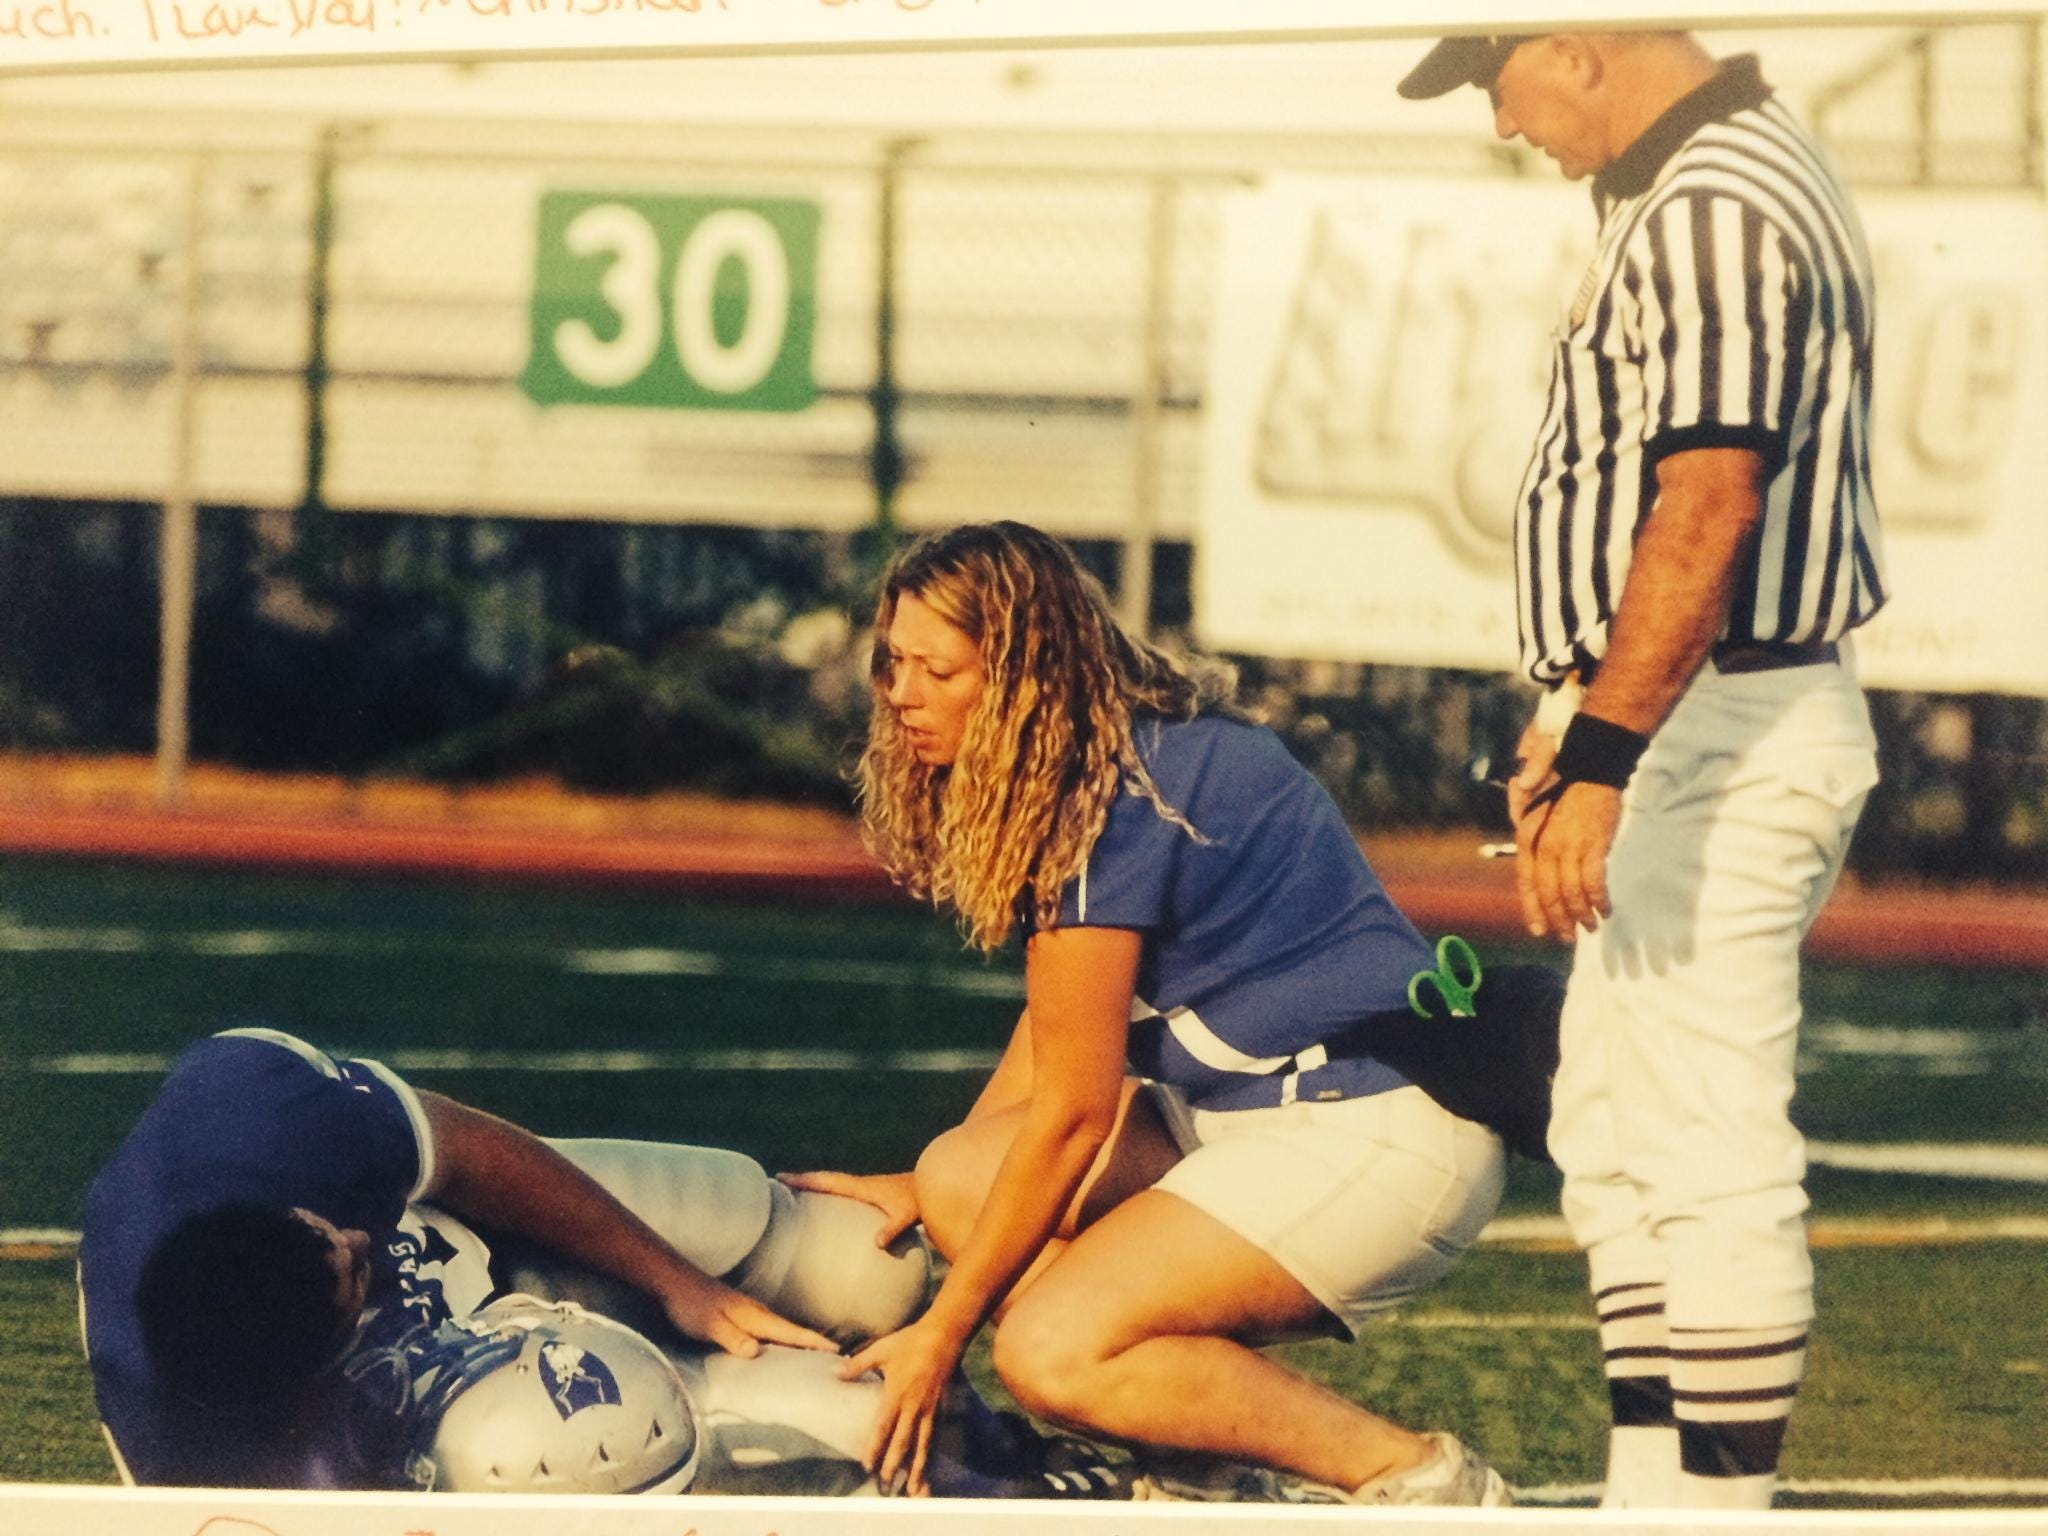 Carey Christensen spent the last 16 years as the athletic trainer at Poudre High School.